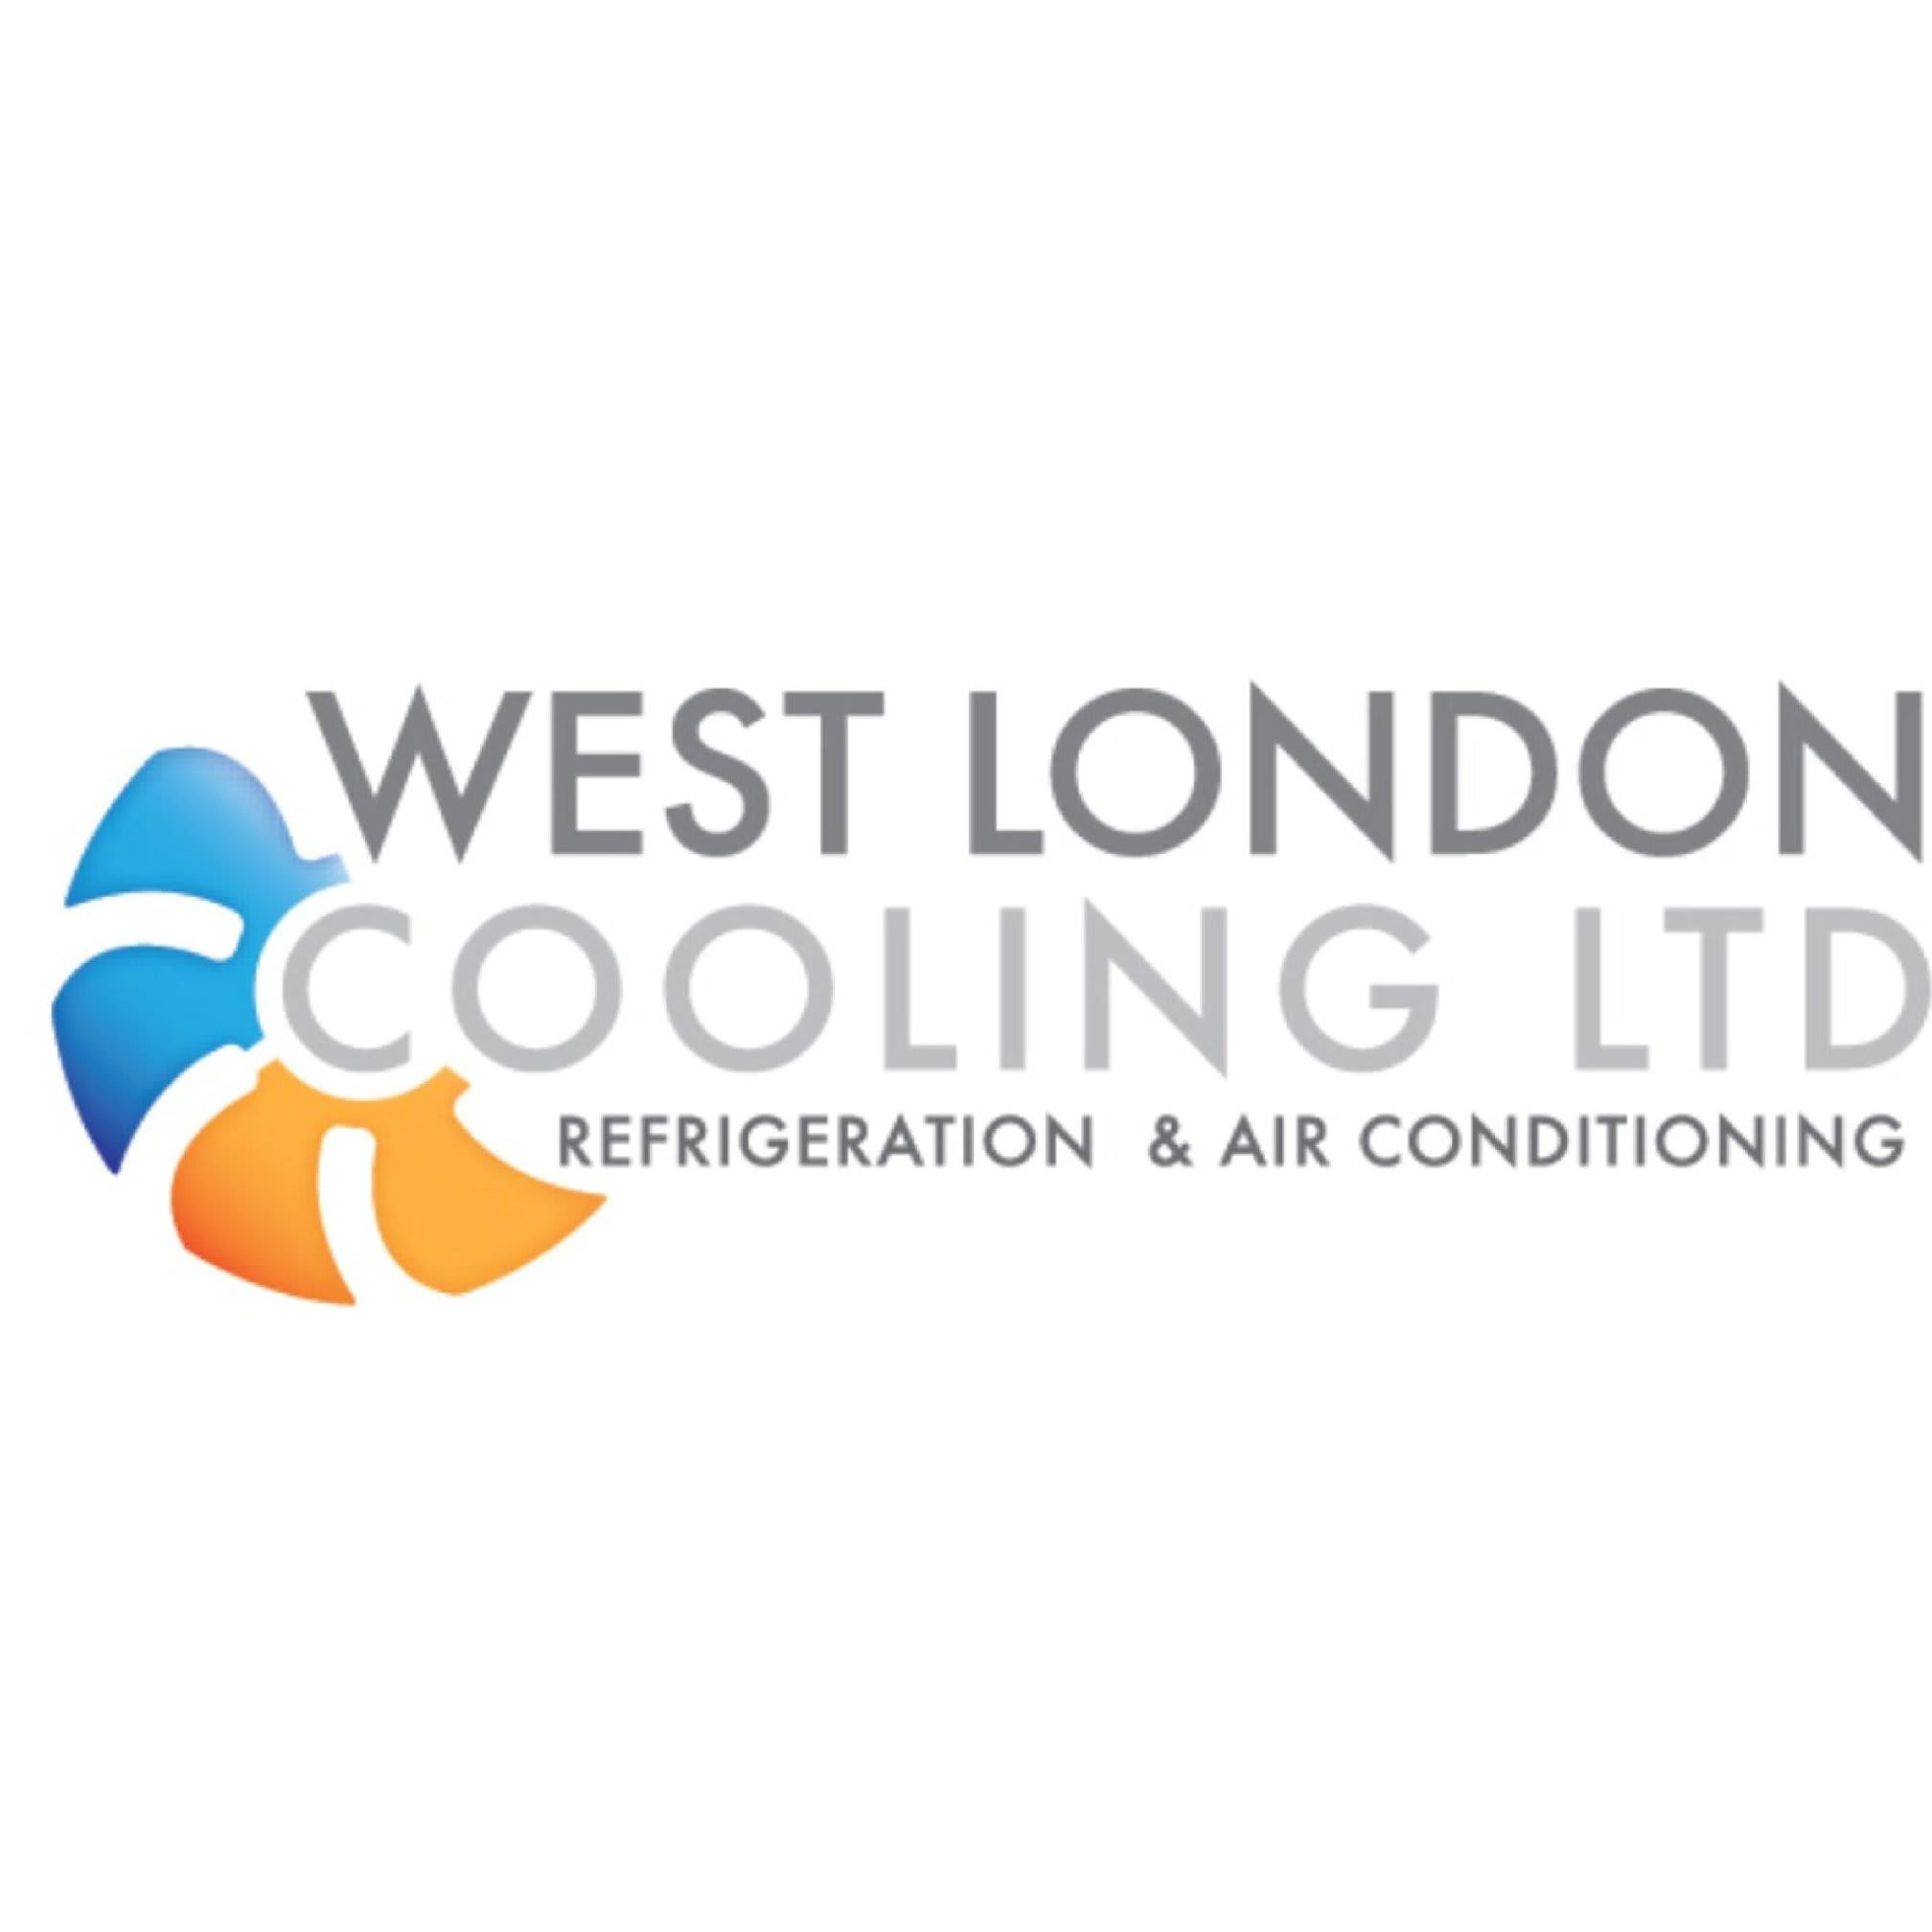 West London Cooling Ltd